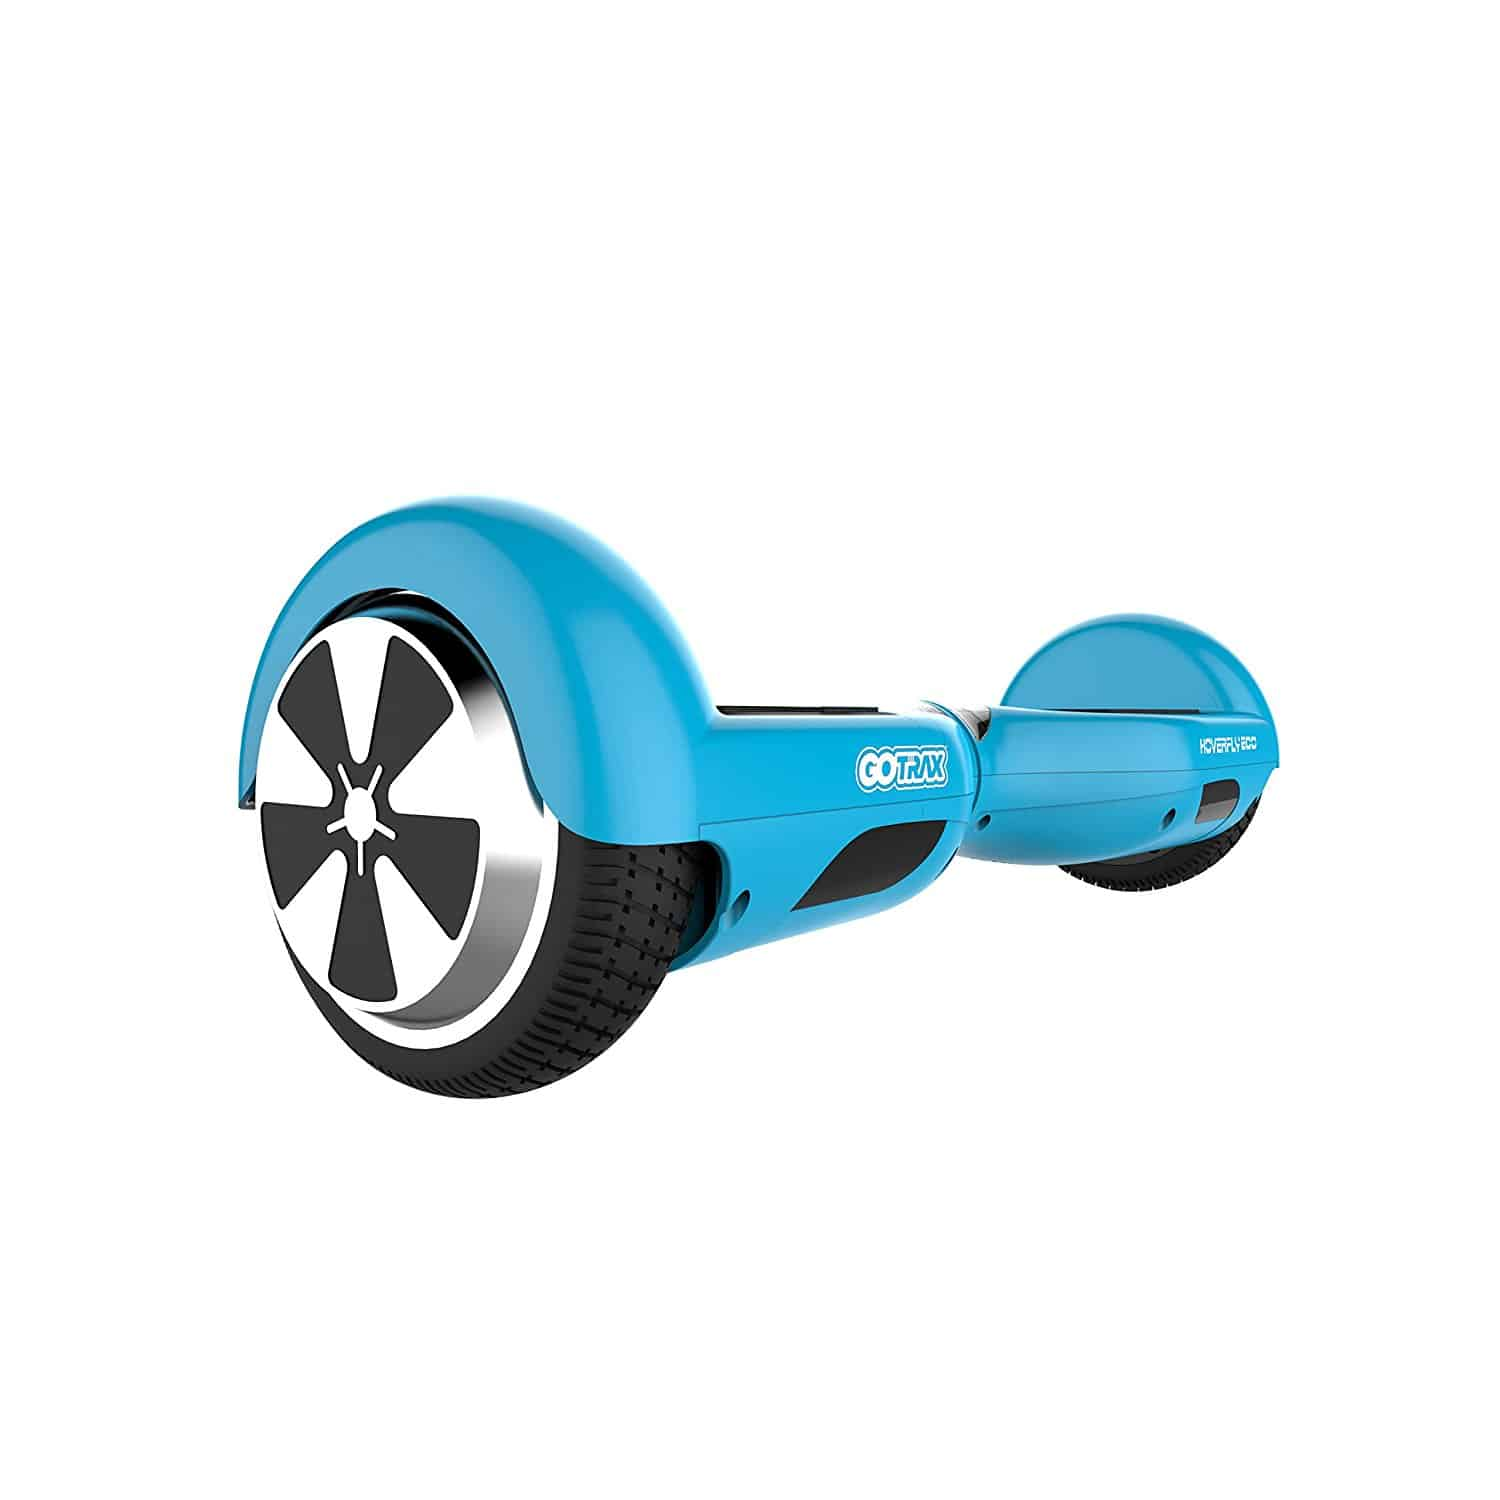 Best Hoverboard under 0 – GoTrax Hoverfly Eco